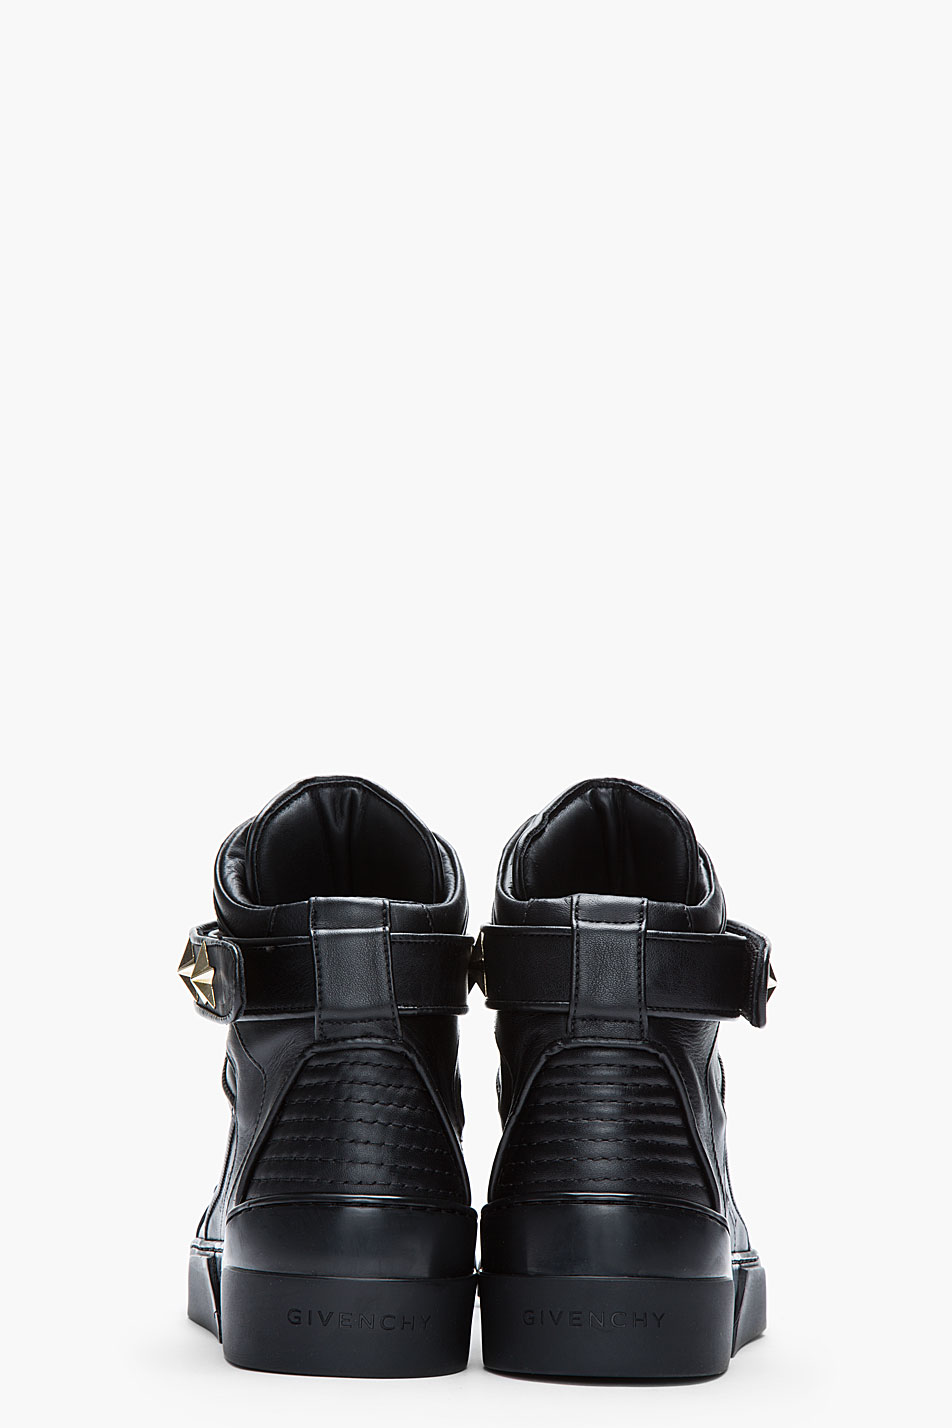 Givenchy Star-Embellished ball sneakers 3